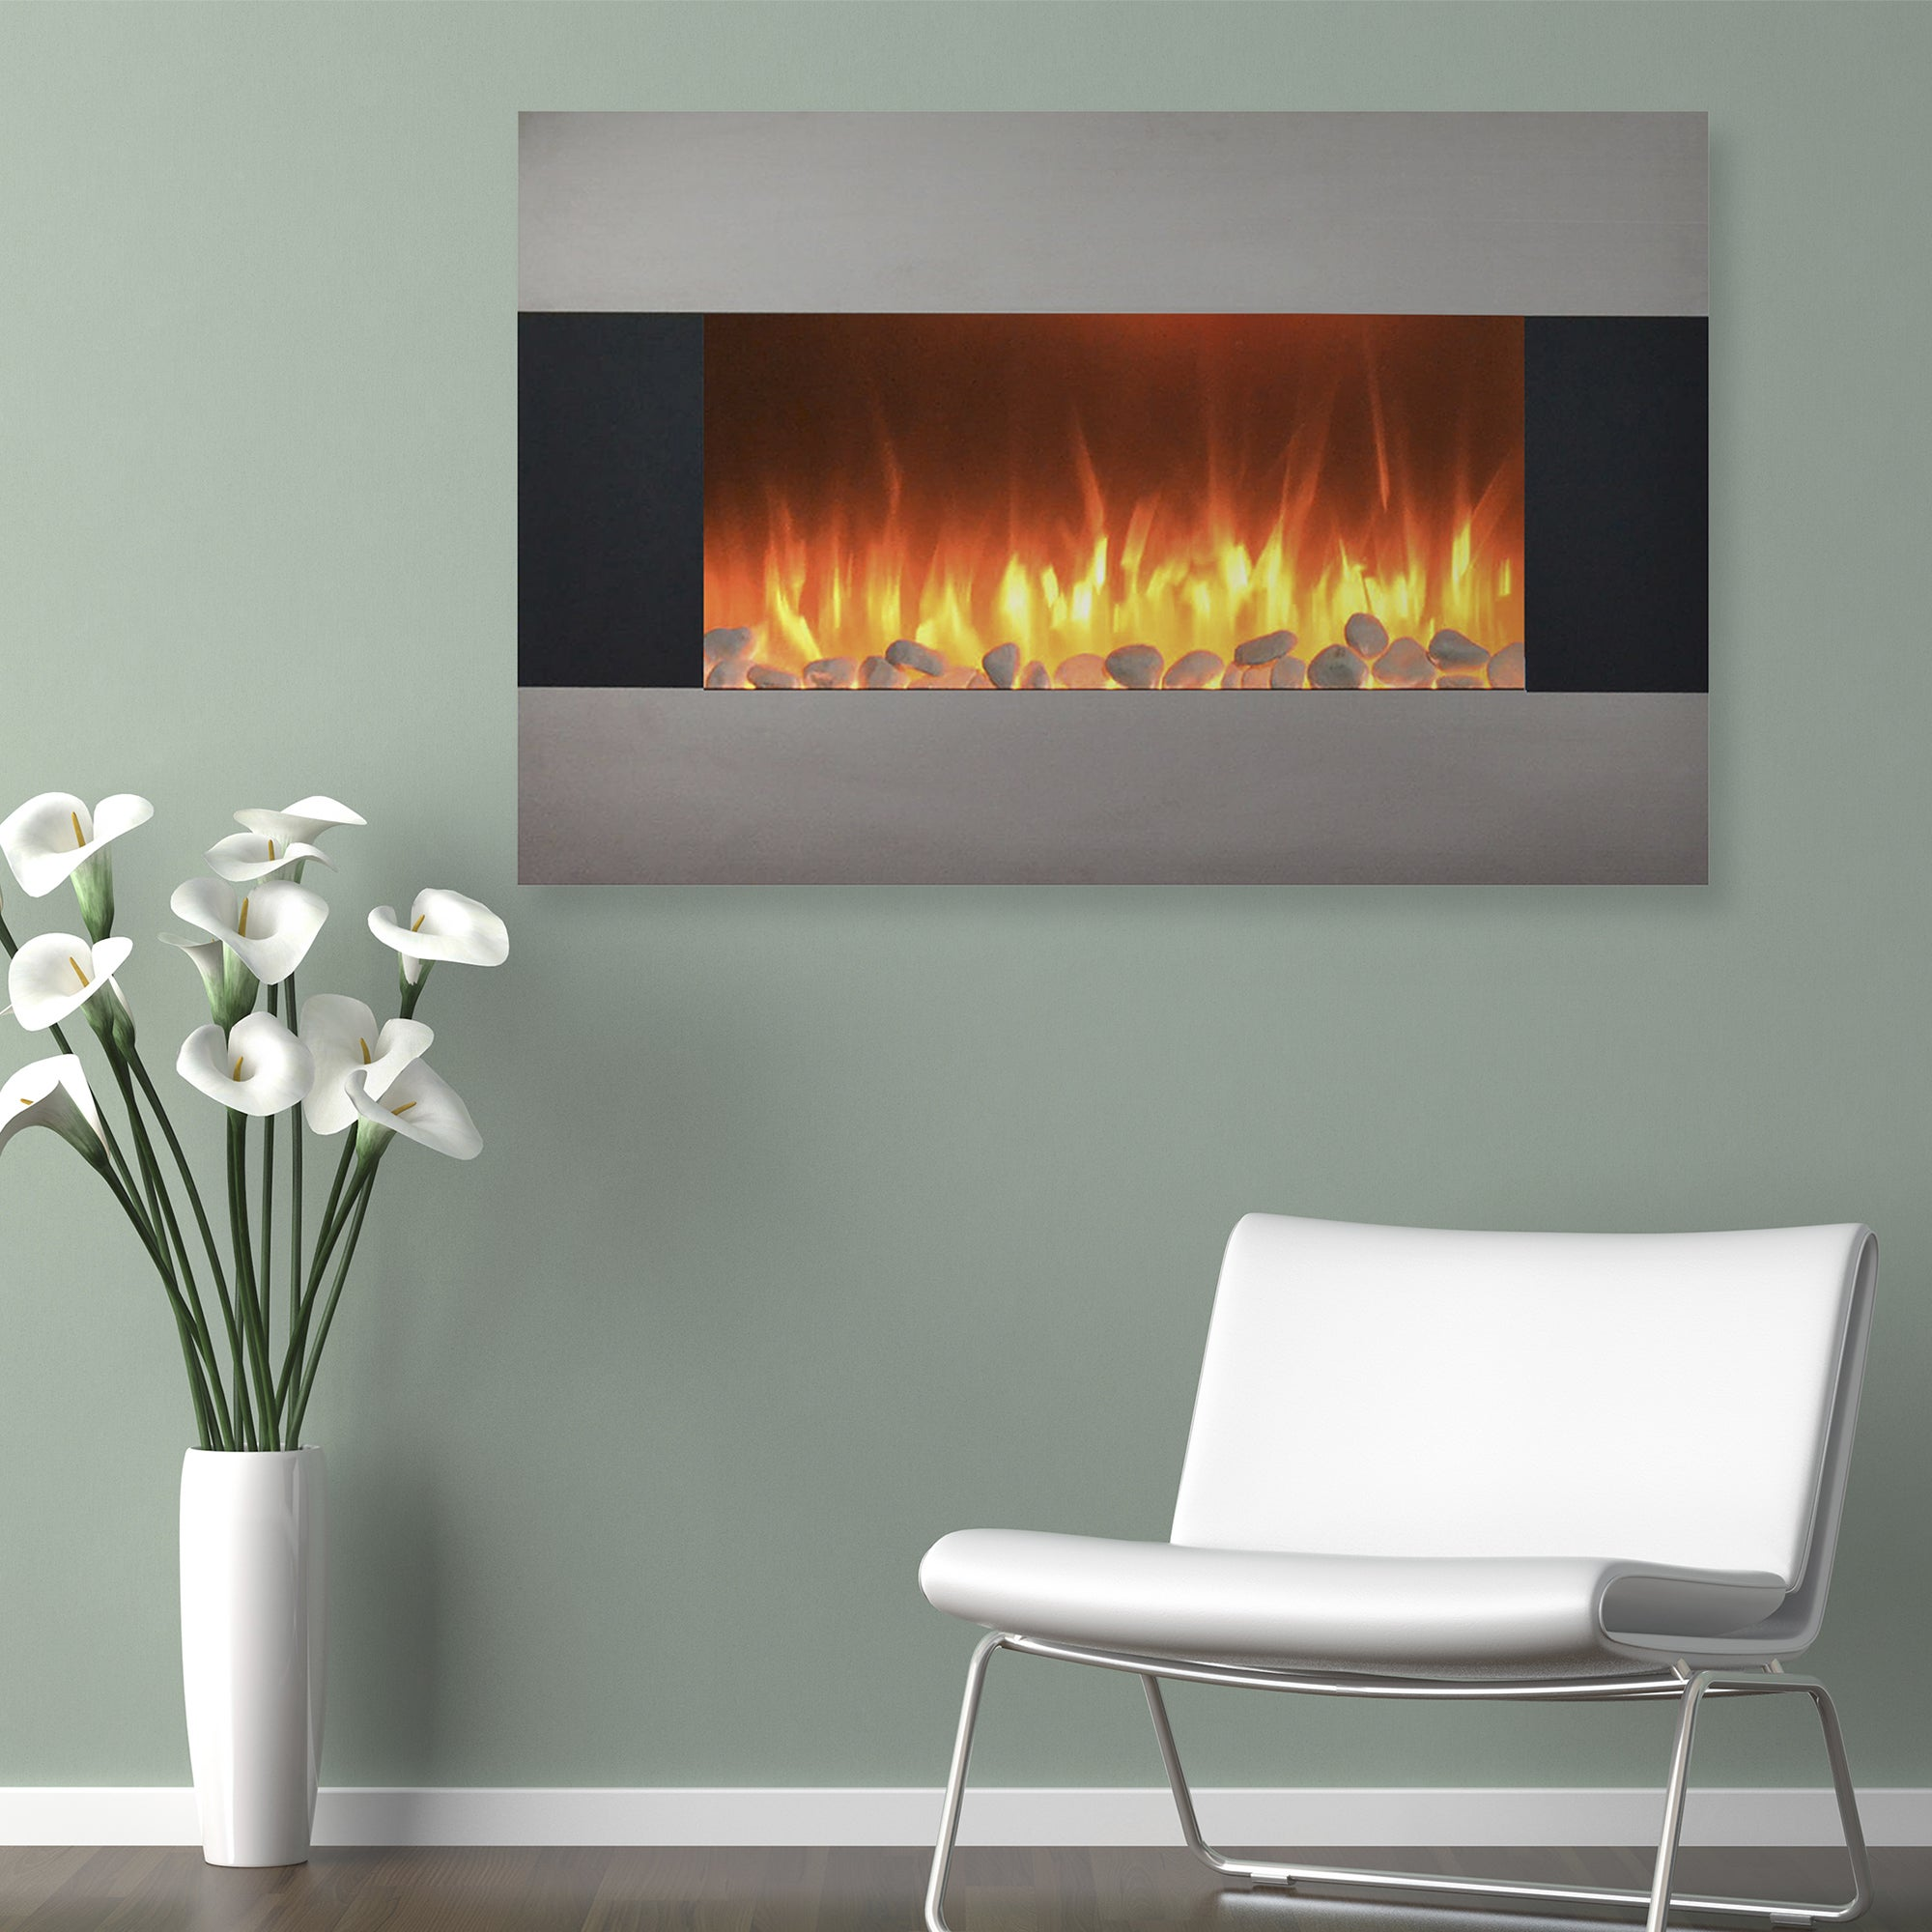 setting allure fireplace mt inch mounted napoleon lifestyle products fireplaces phantom electric wall